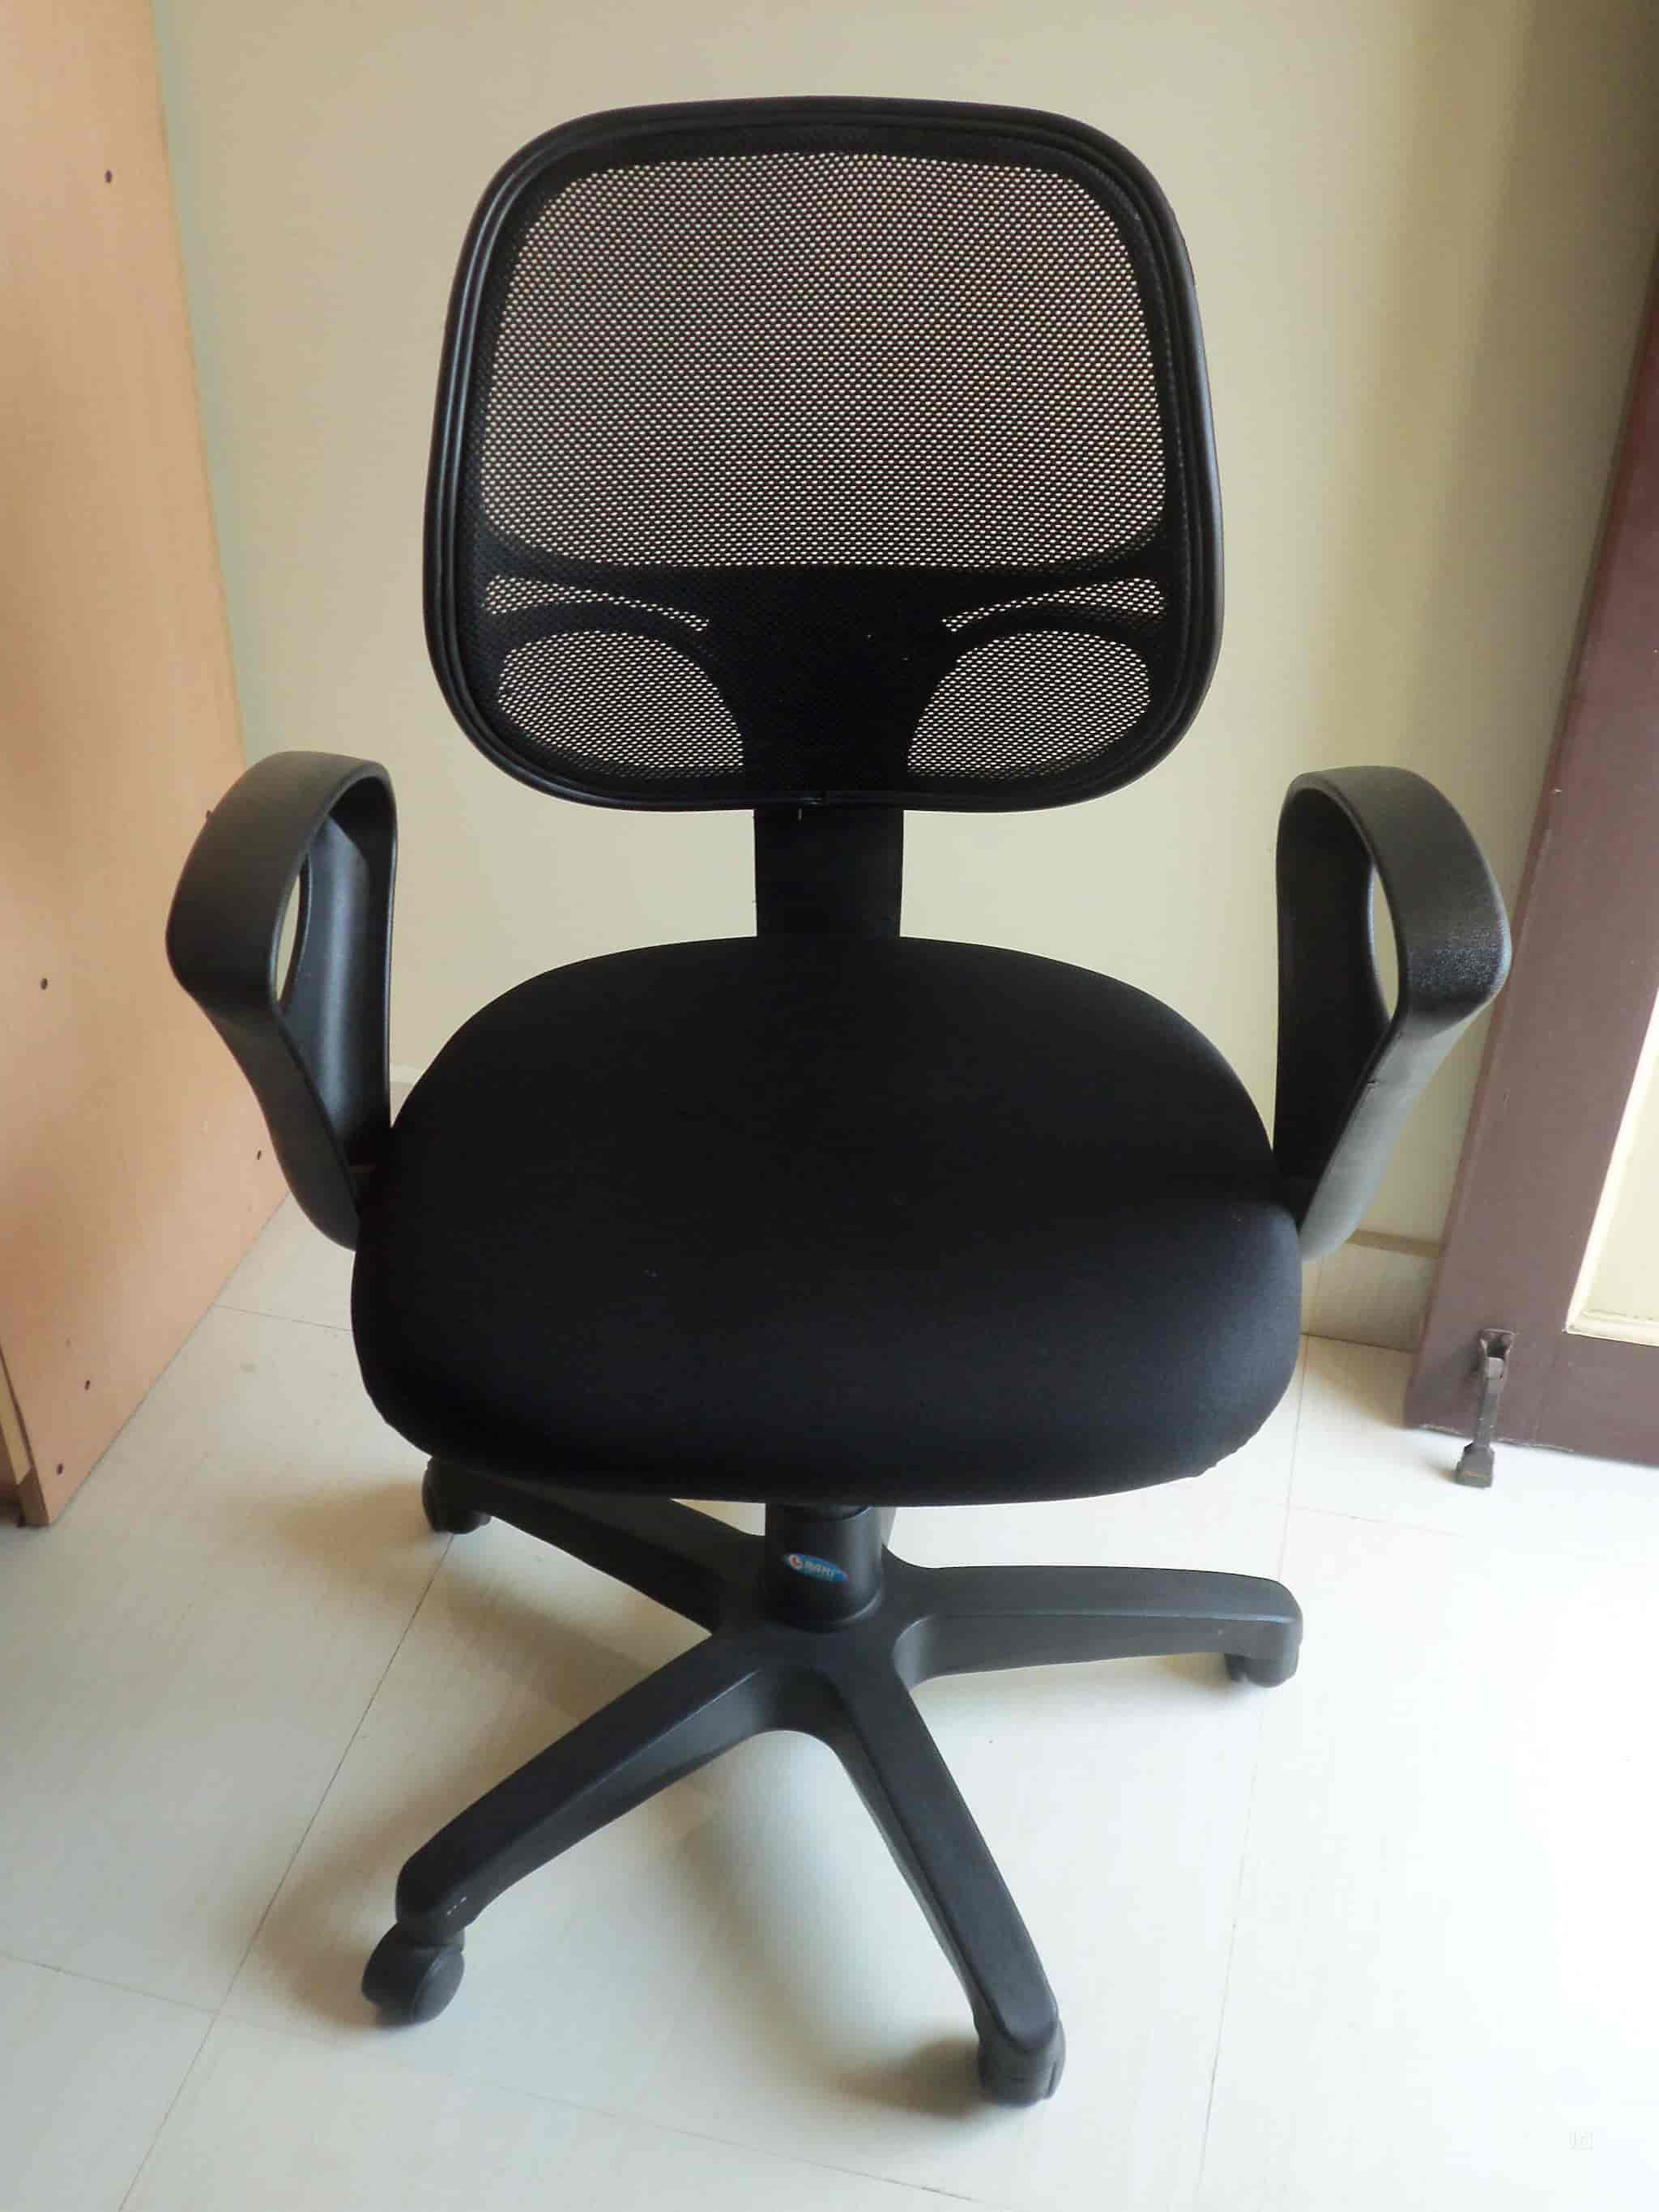 revolving chair dealers in chennai salon chairs images rani photos nerkundram koyambedu pictures rc 803